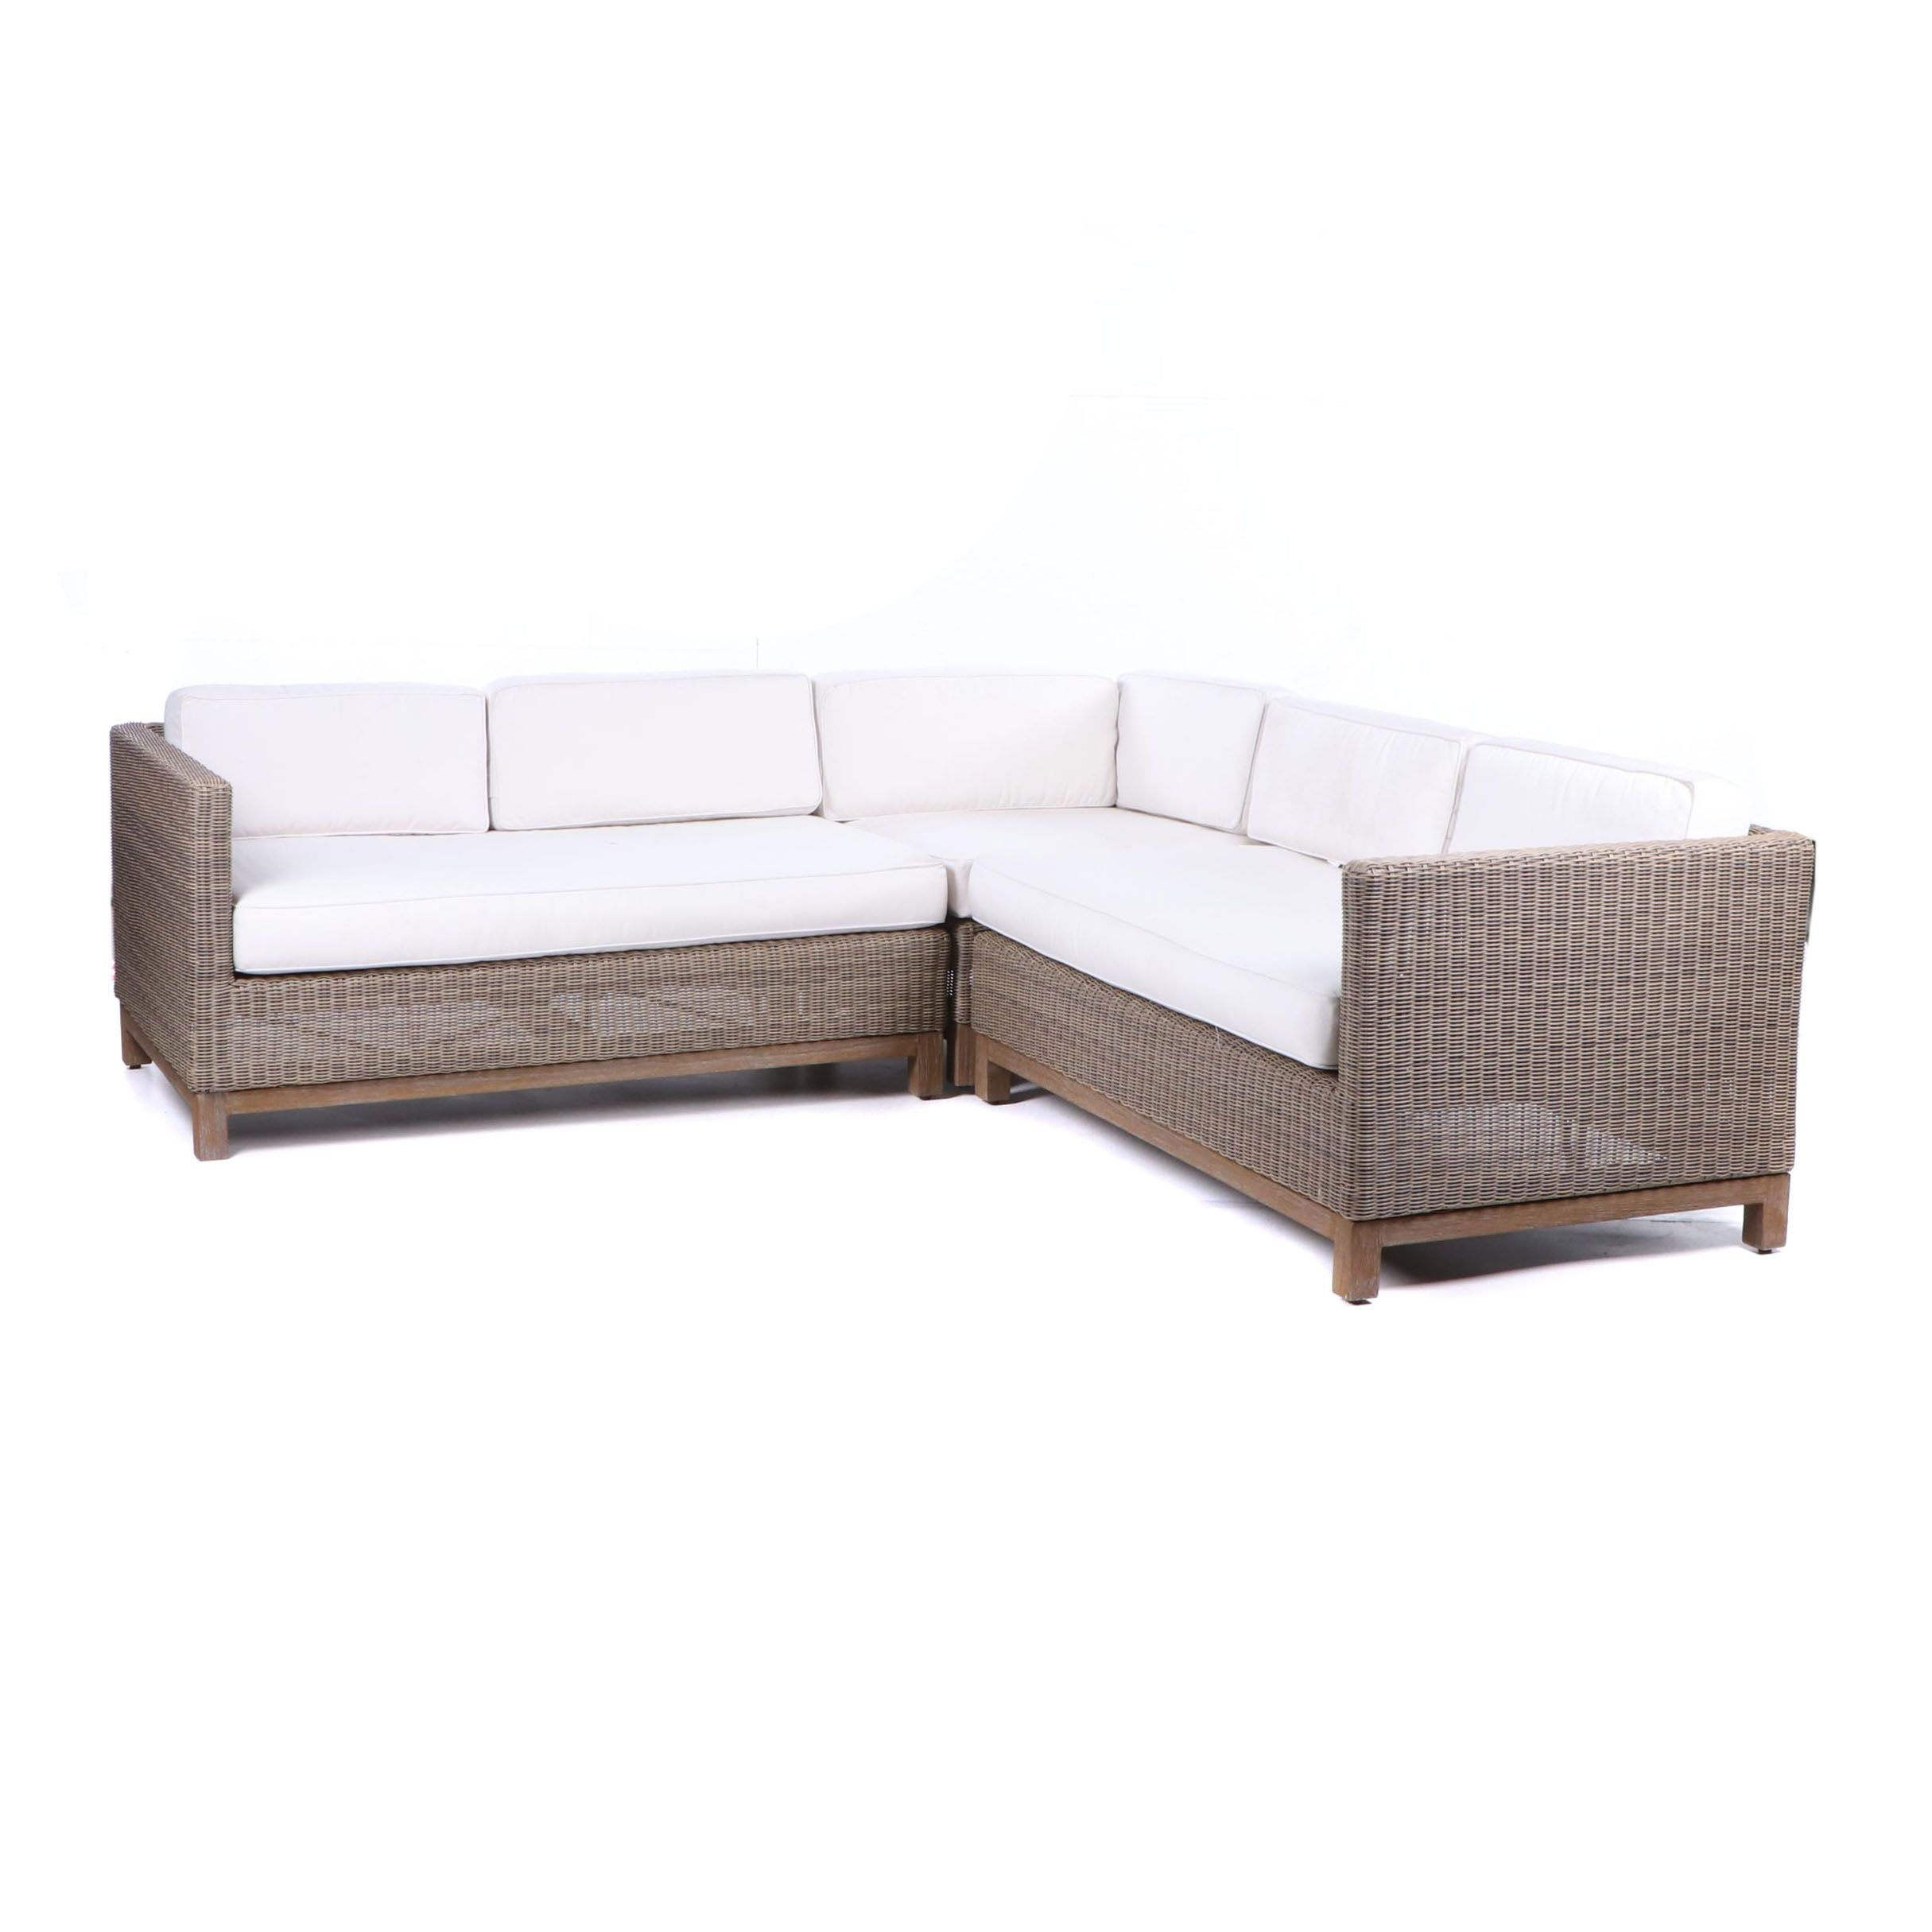 """Malibu"" Outdoor Wicker and Teak Sectional Sofa by Restoration Hardware, 21st C."